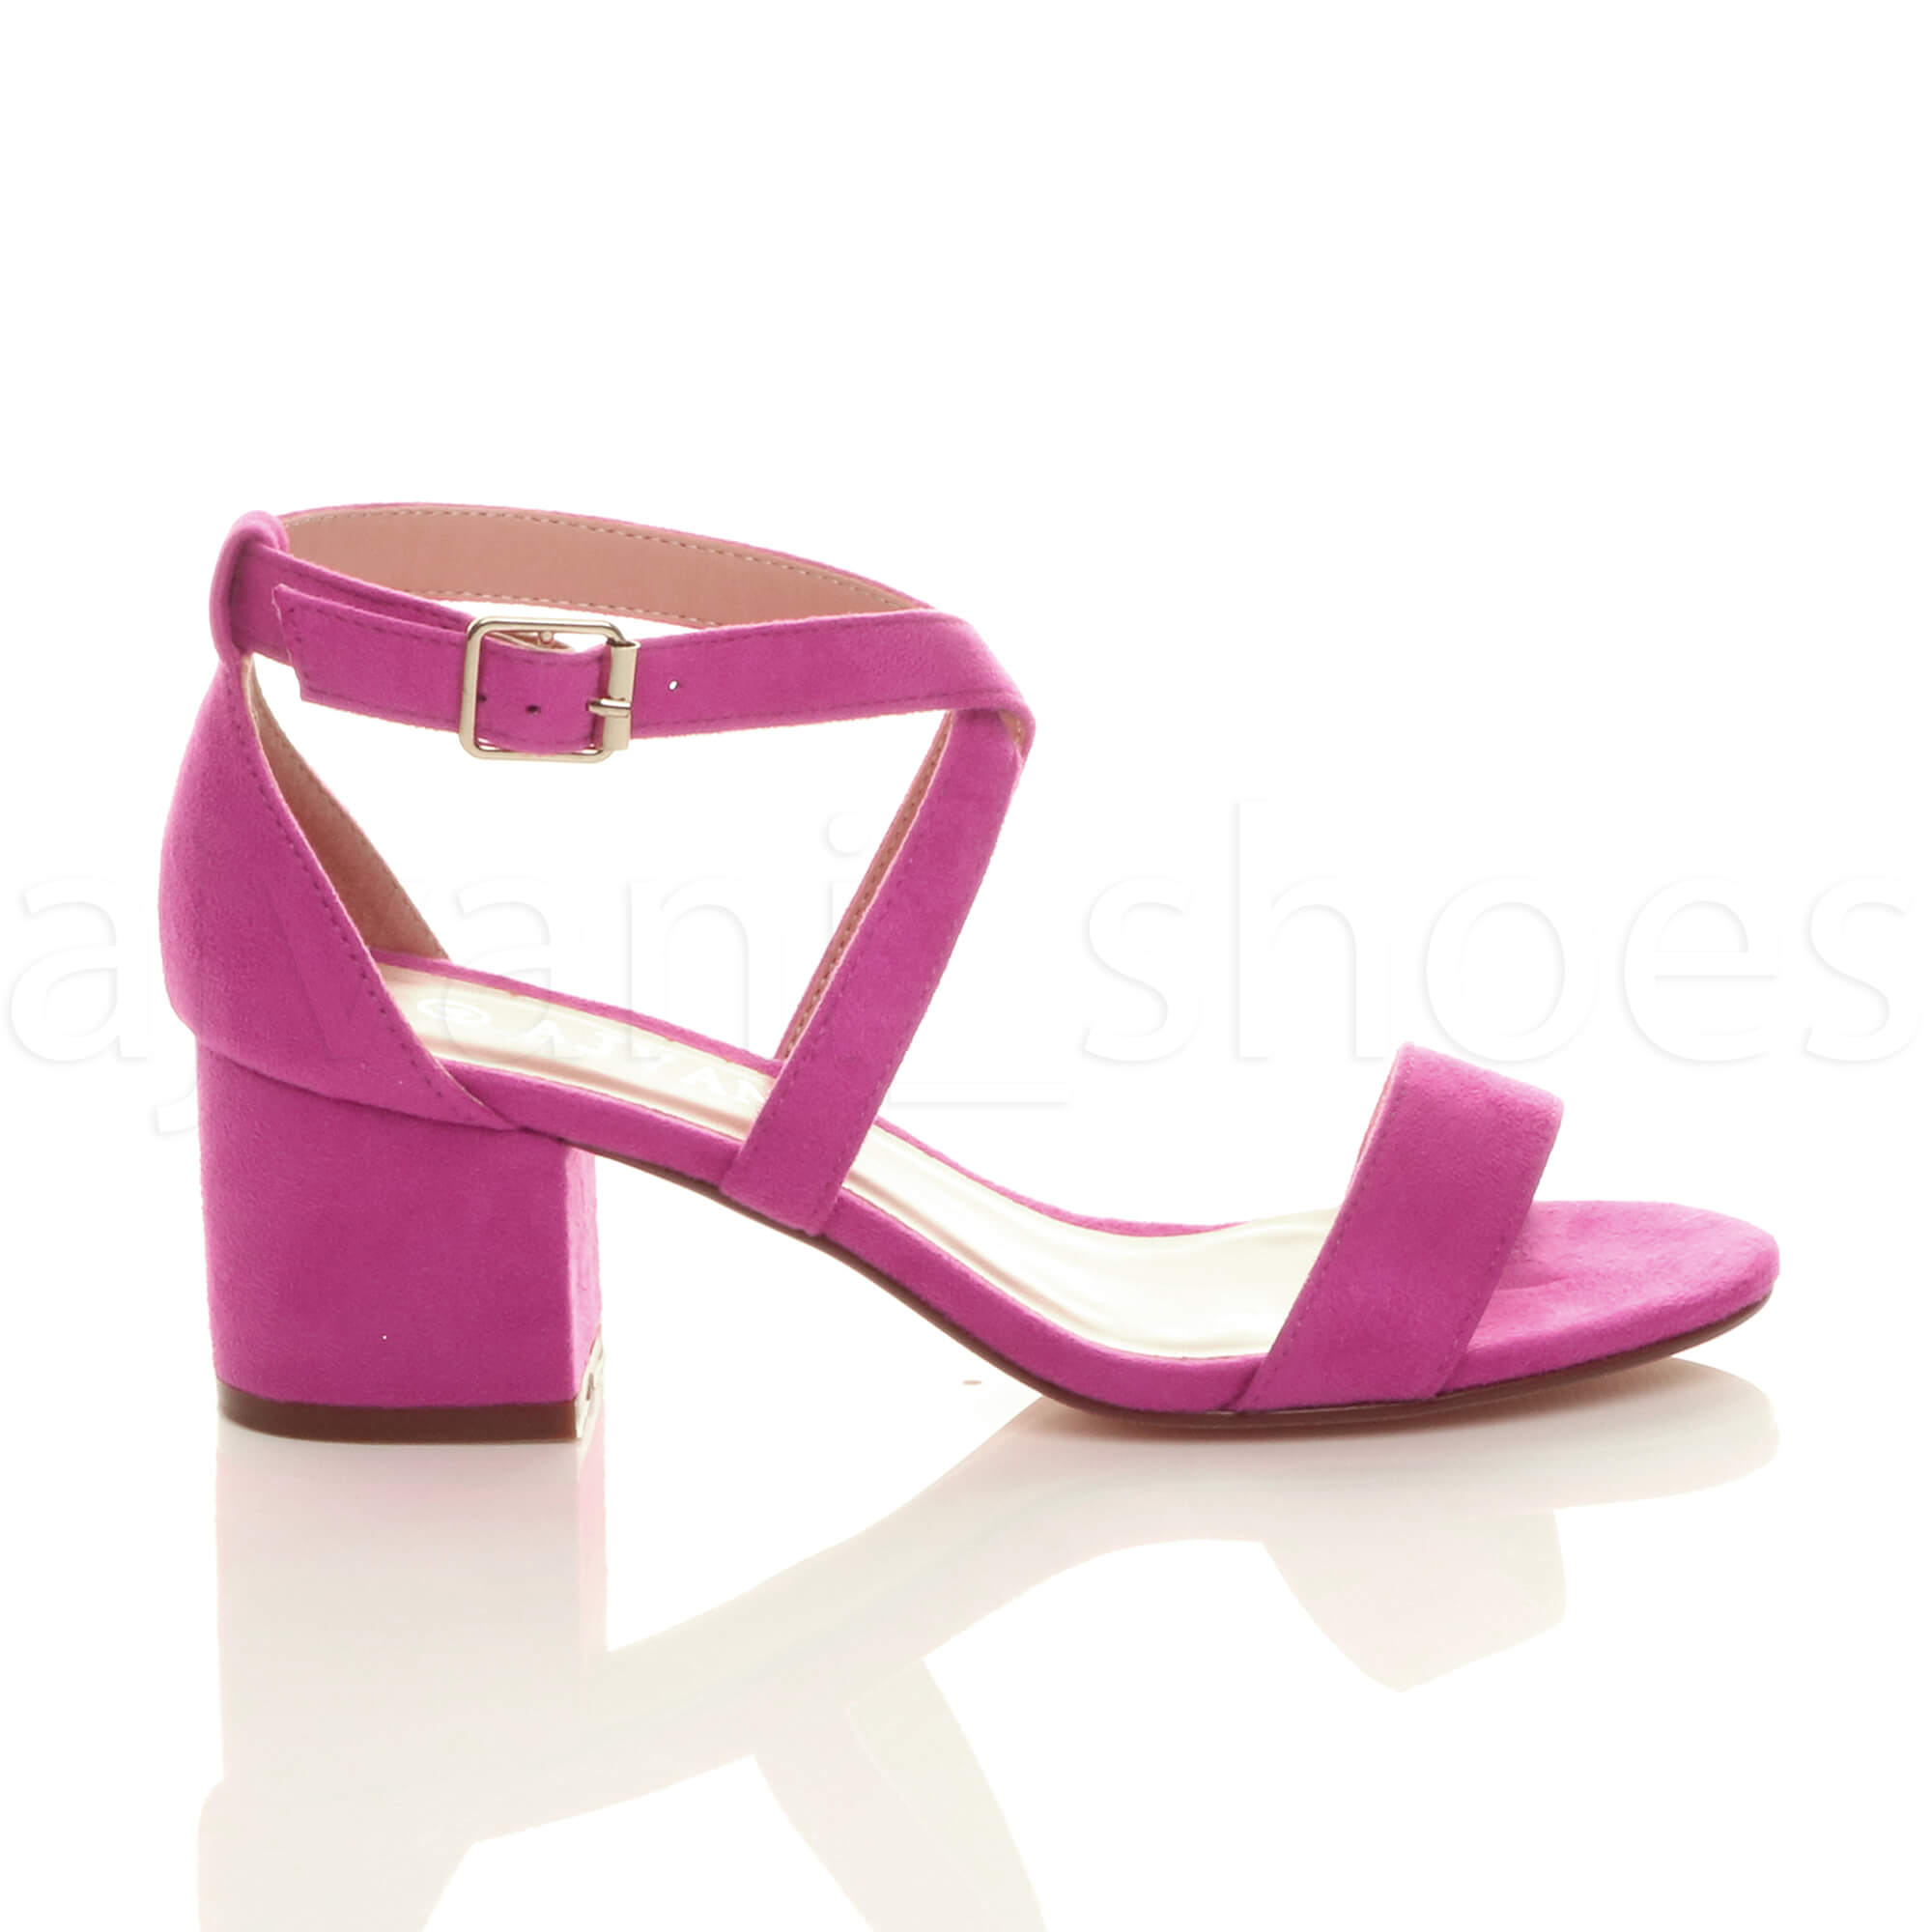 WOMENS-LADIES-MID-LOW-BLOCK-HEEL-CROSS-STRAPS-PARTY-STRAPPY-SANDALS-SHOES-SIZE thumbnail 22